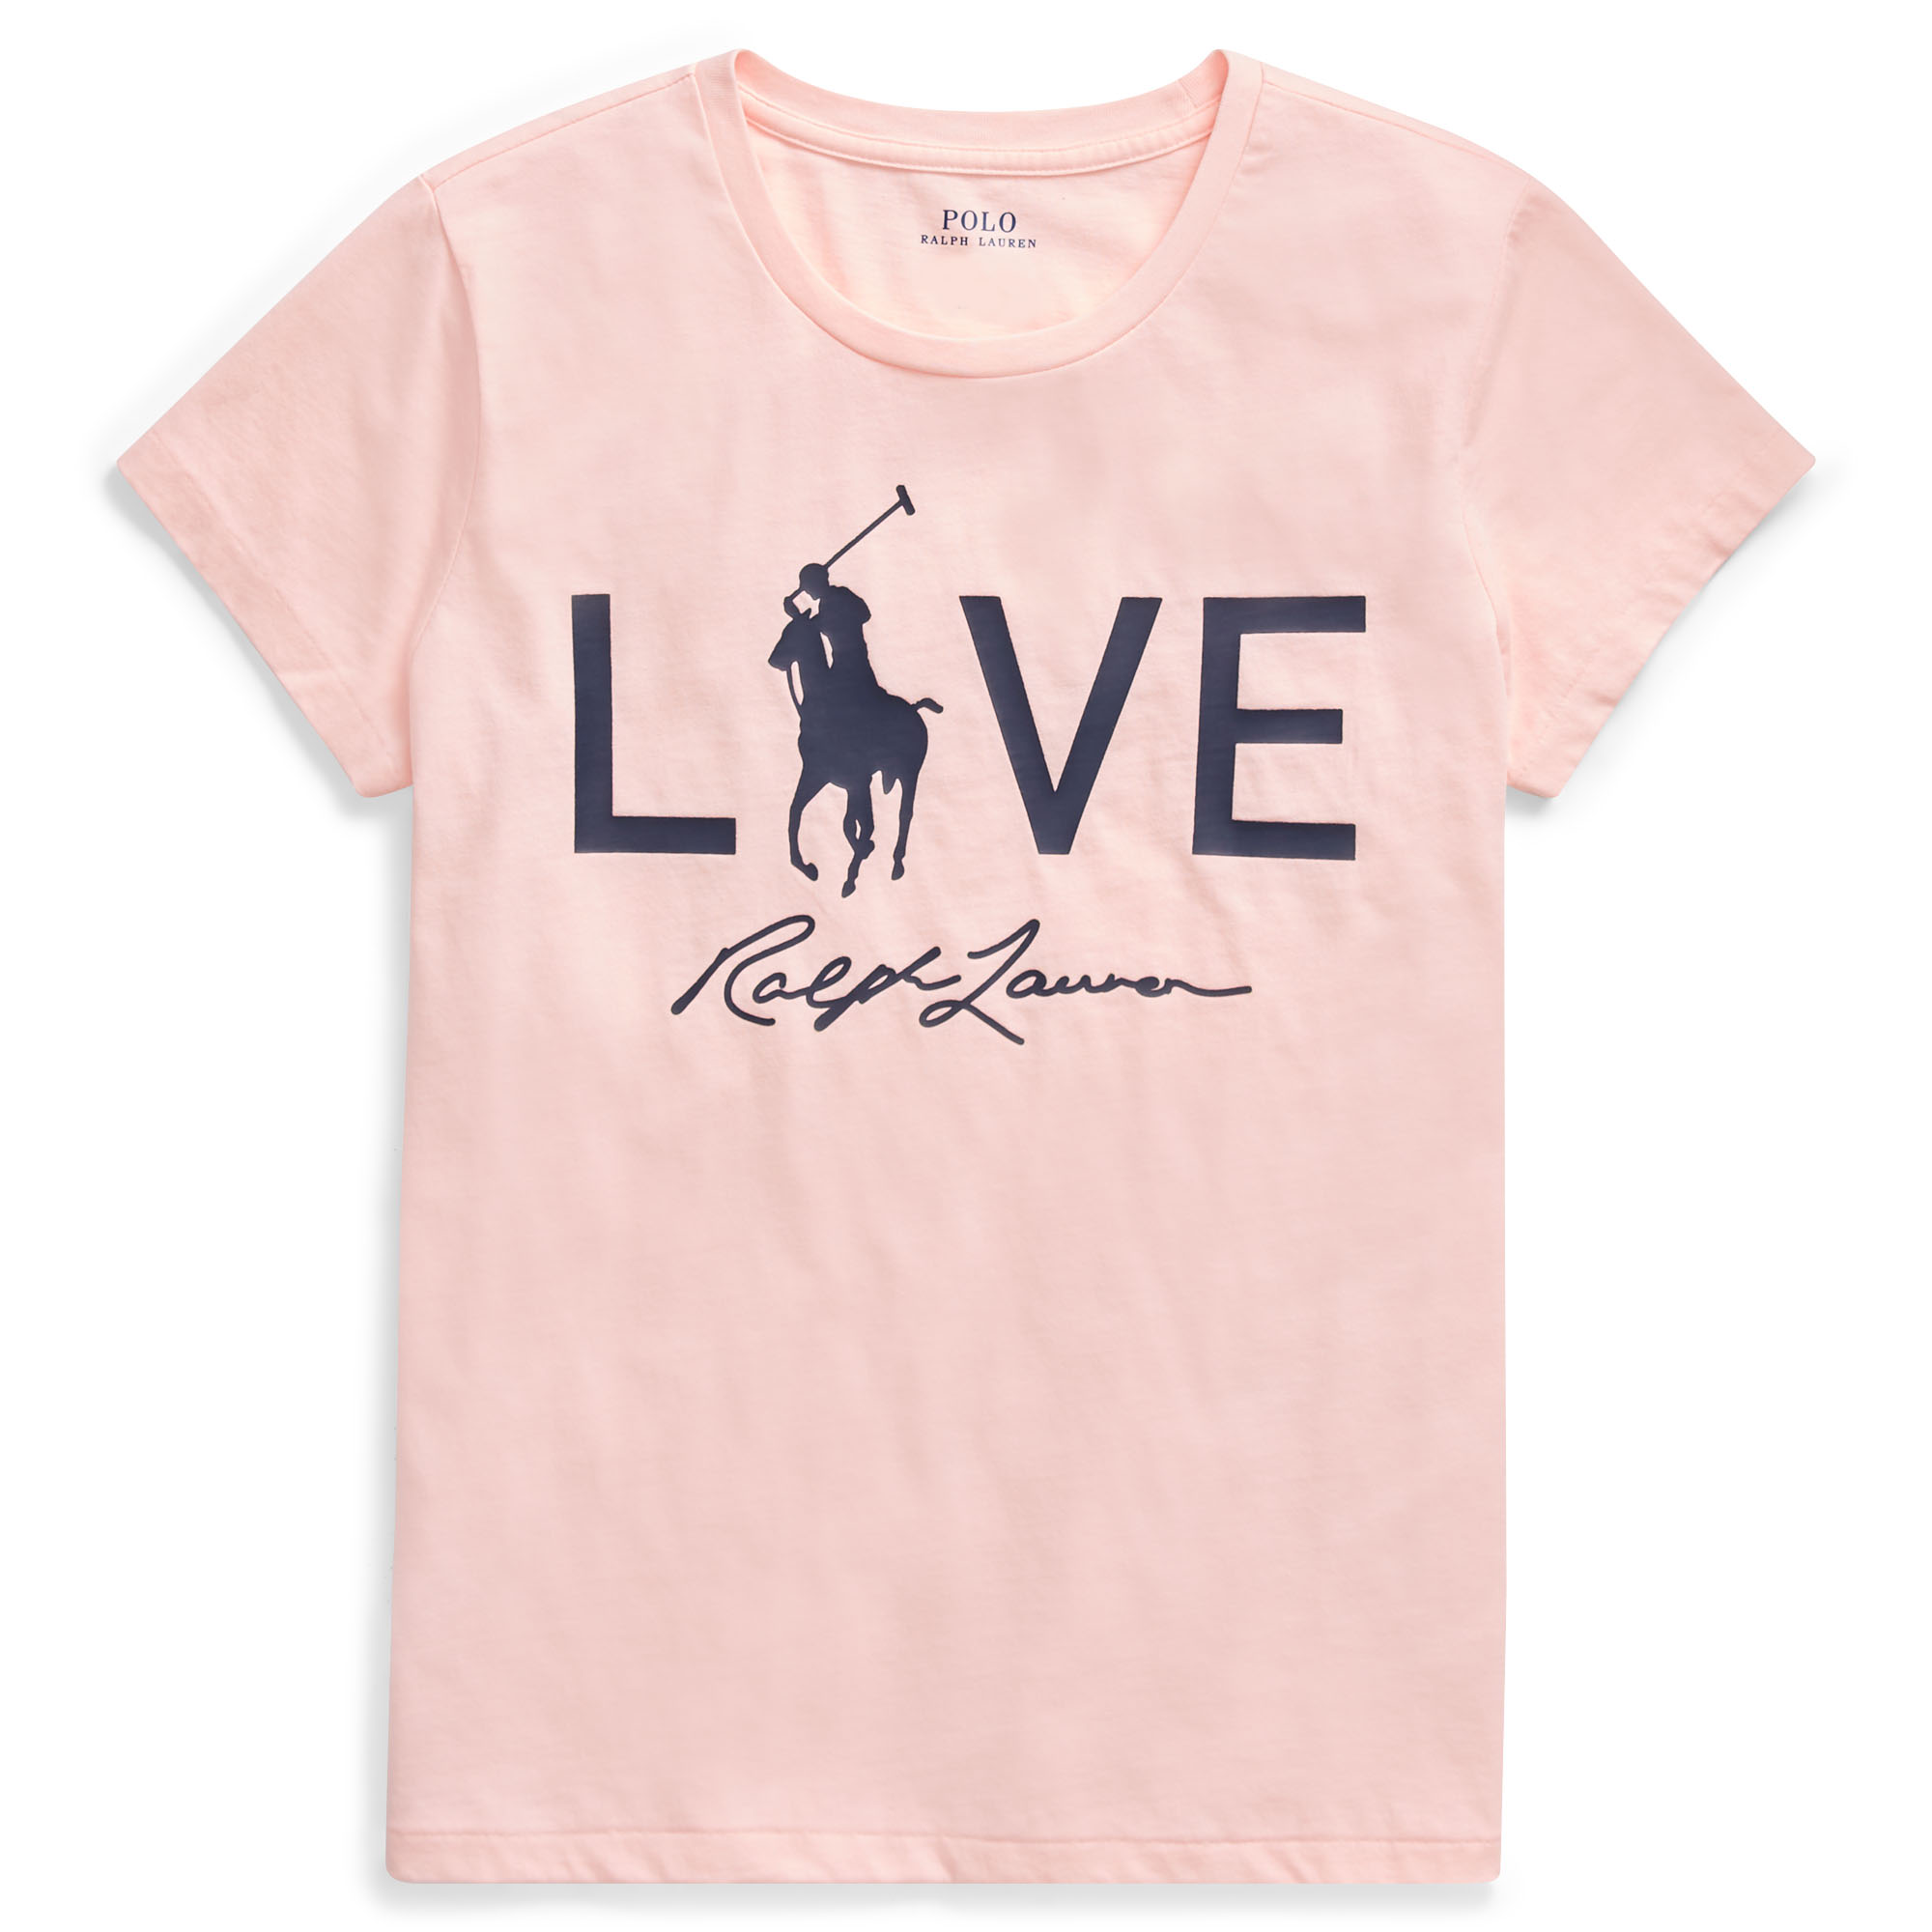 Polo Ralph Lauren Live Love T-Shirt